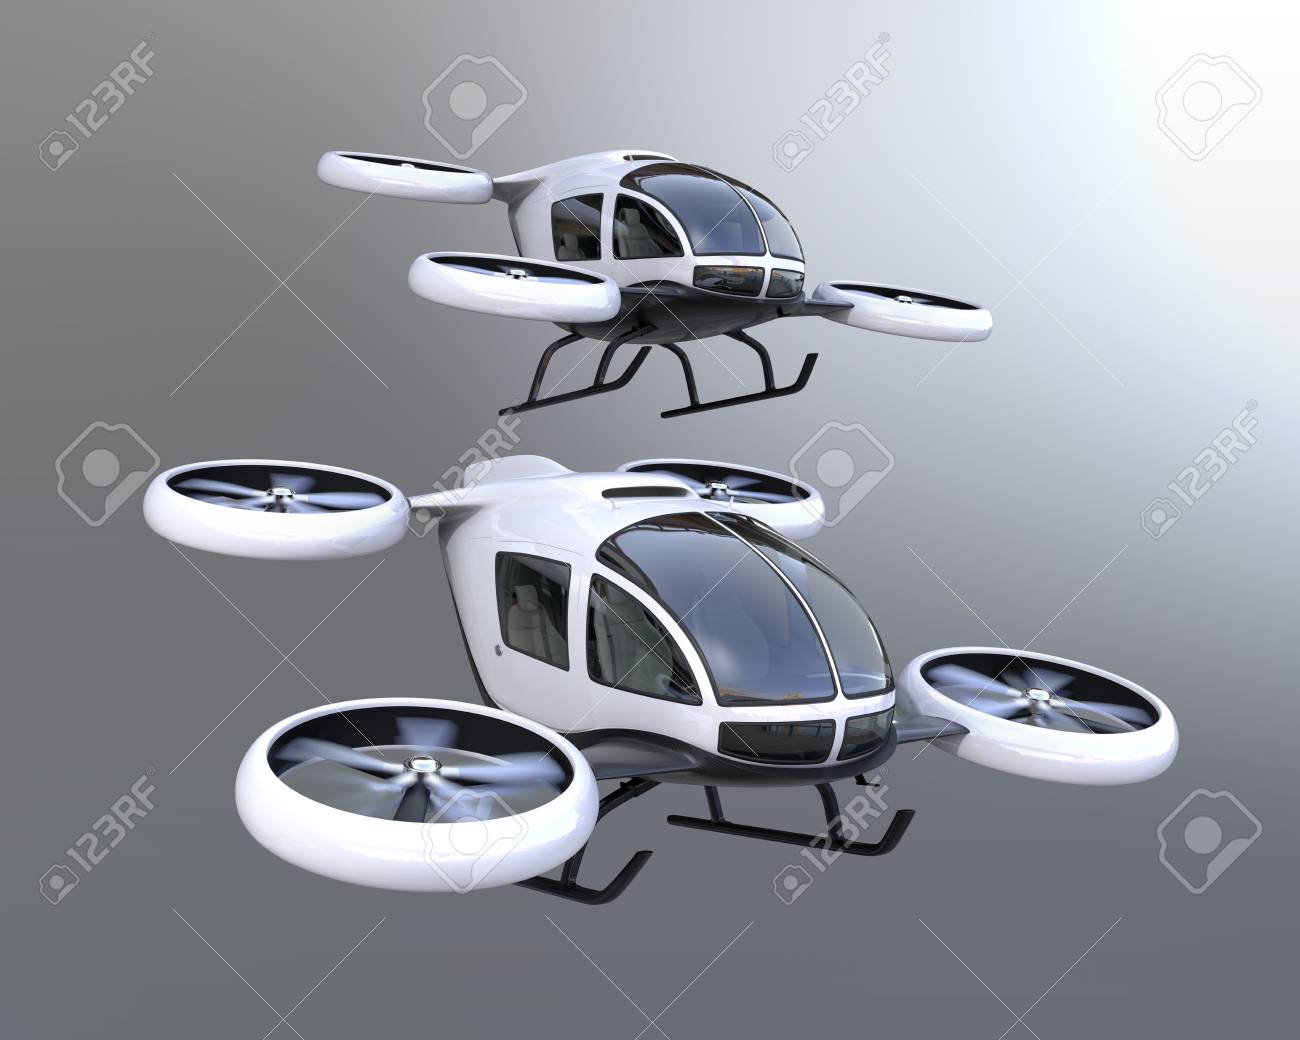 Two self-driving passenger drones flying in the sky. 3D rendering image. - 88292497